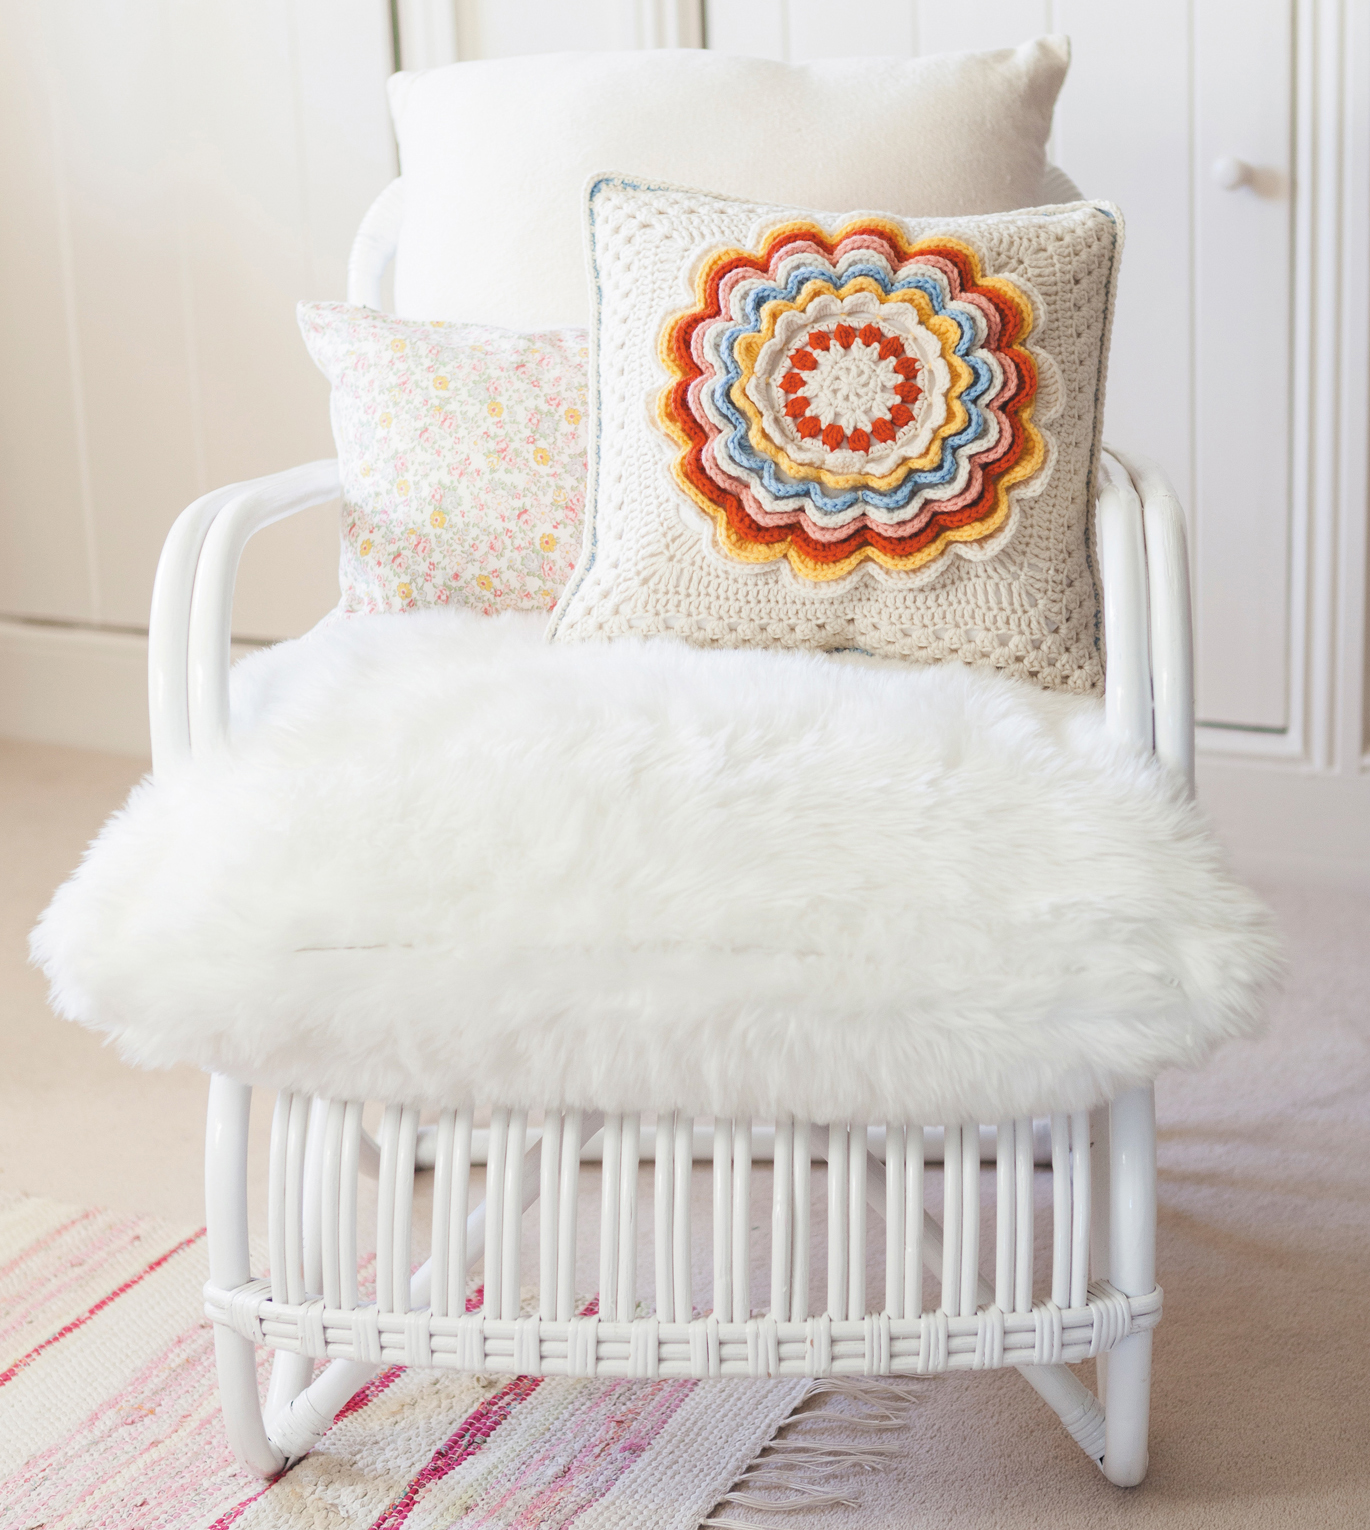 Fabulous Rose Cushion from Crochet Home by Emma Lamb.jpg